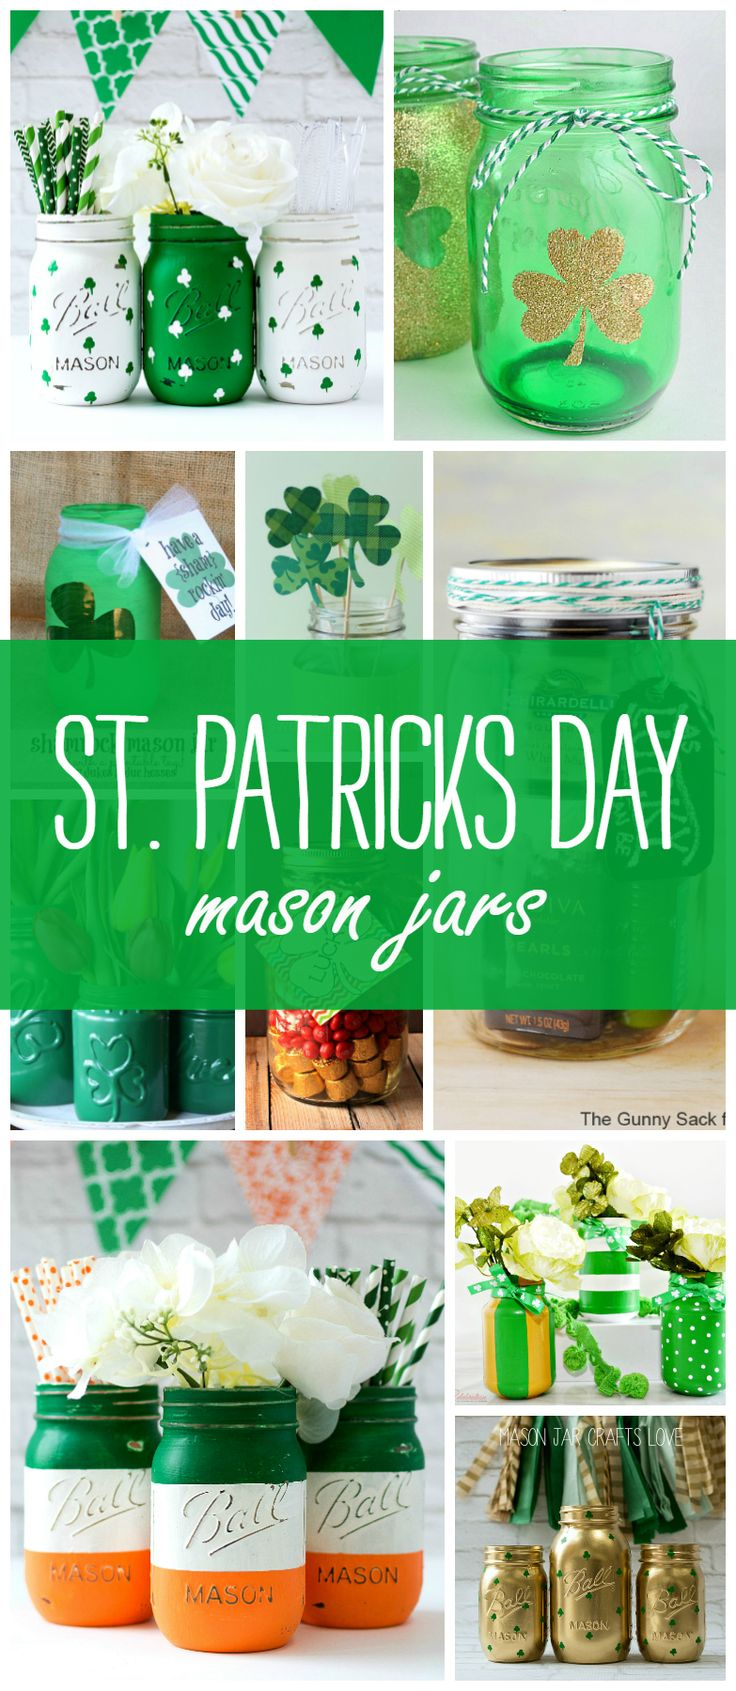 St. Patrick's Day Crafts, Recipes in Mason Jars | St. Patrick's Day Craft Ideas | St. Patrick's Day Recipe ideas | Mason Jar Craft Ideas for St. Patrick's Day @ Mason Jar Crafts Love